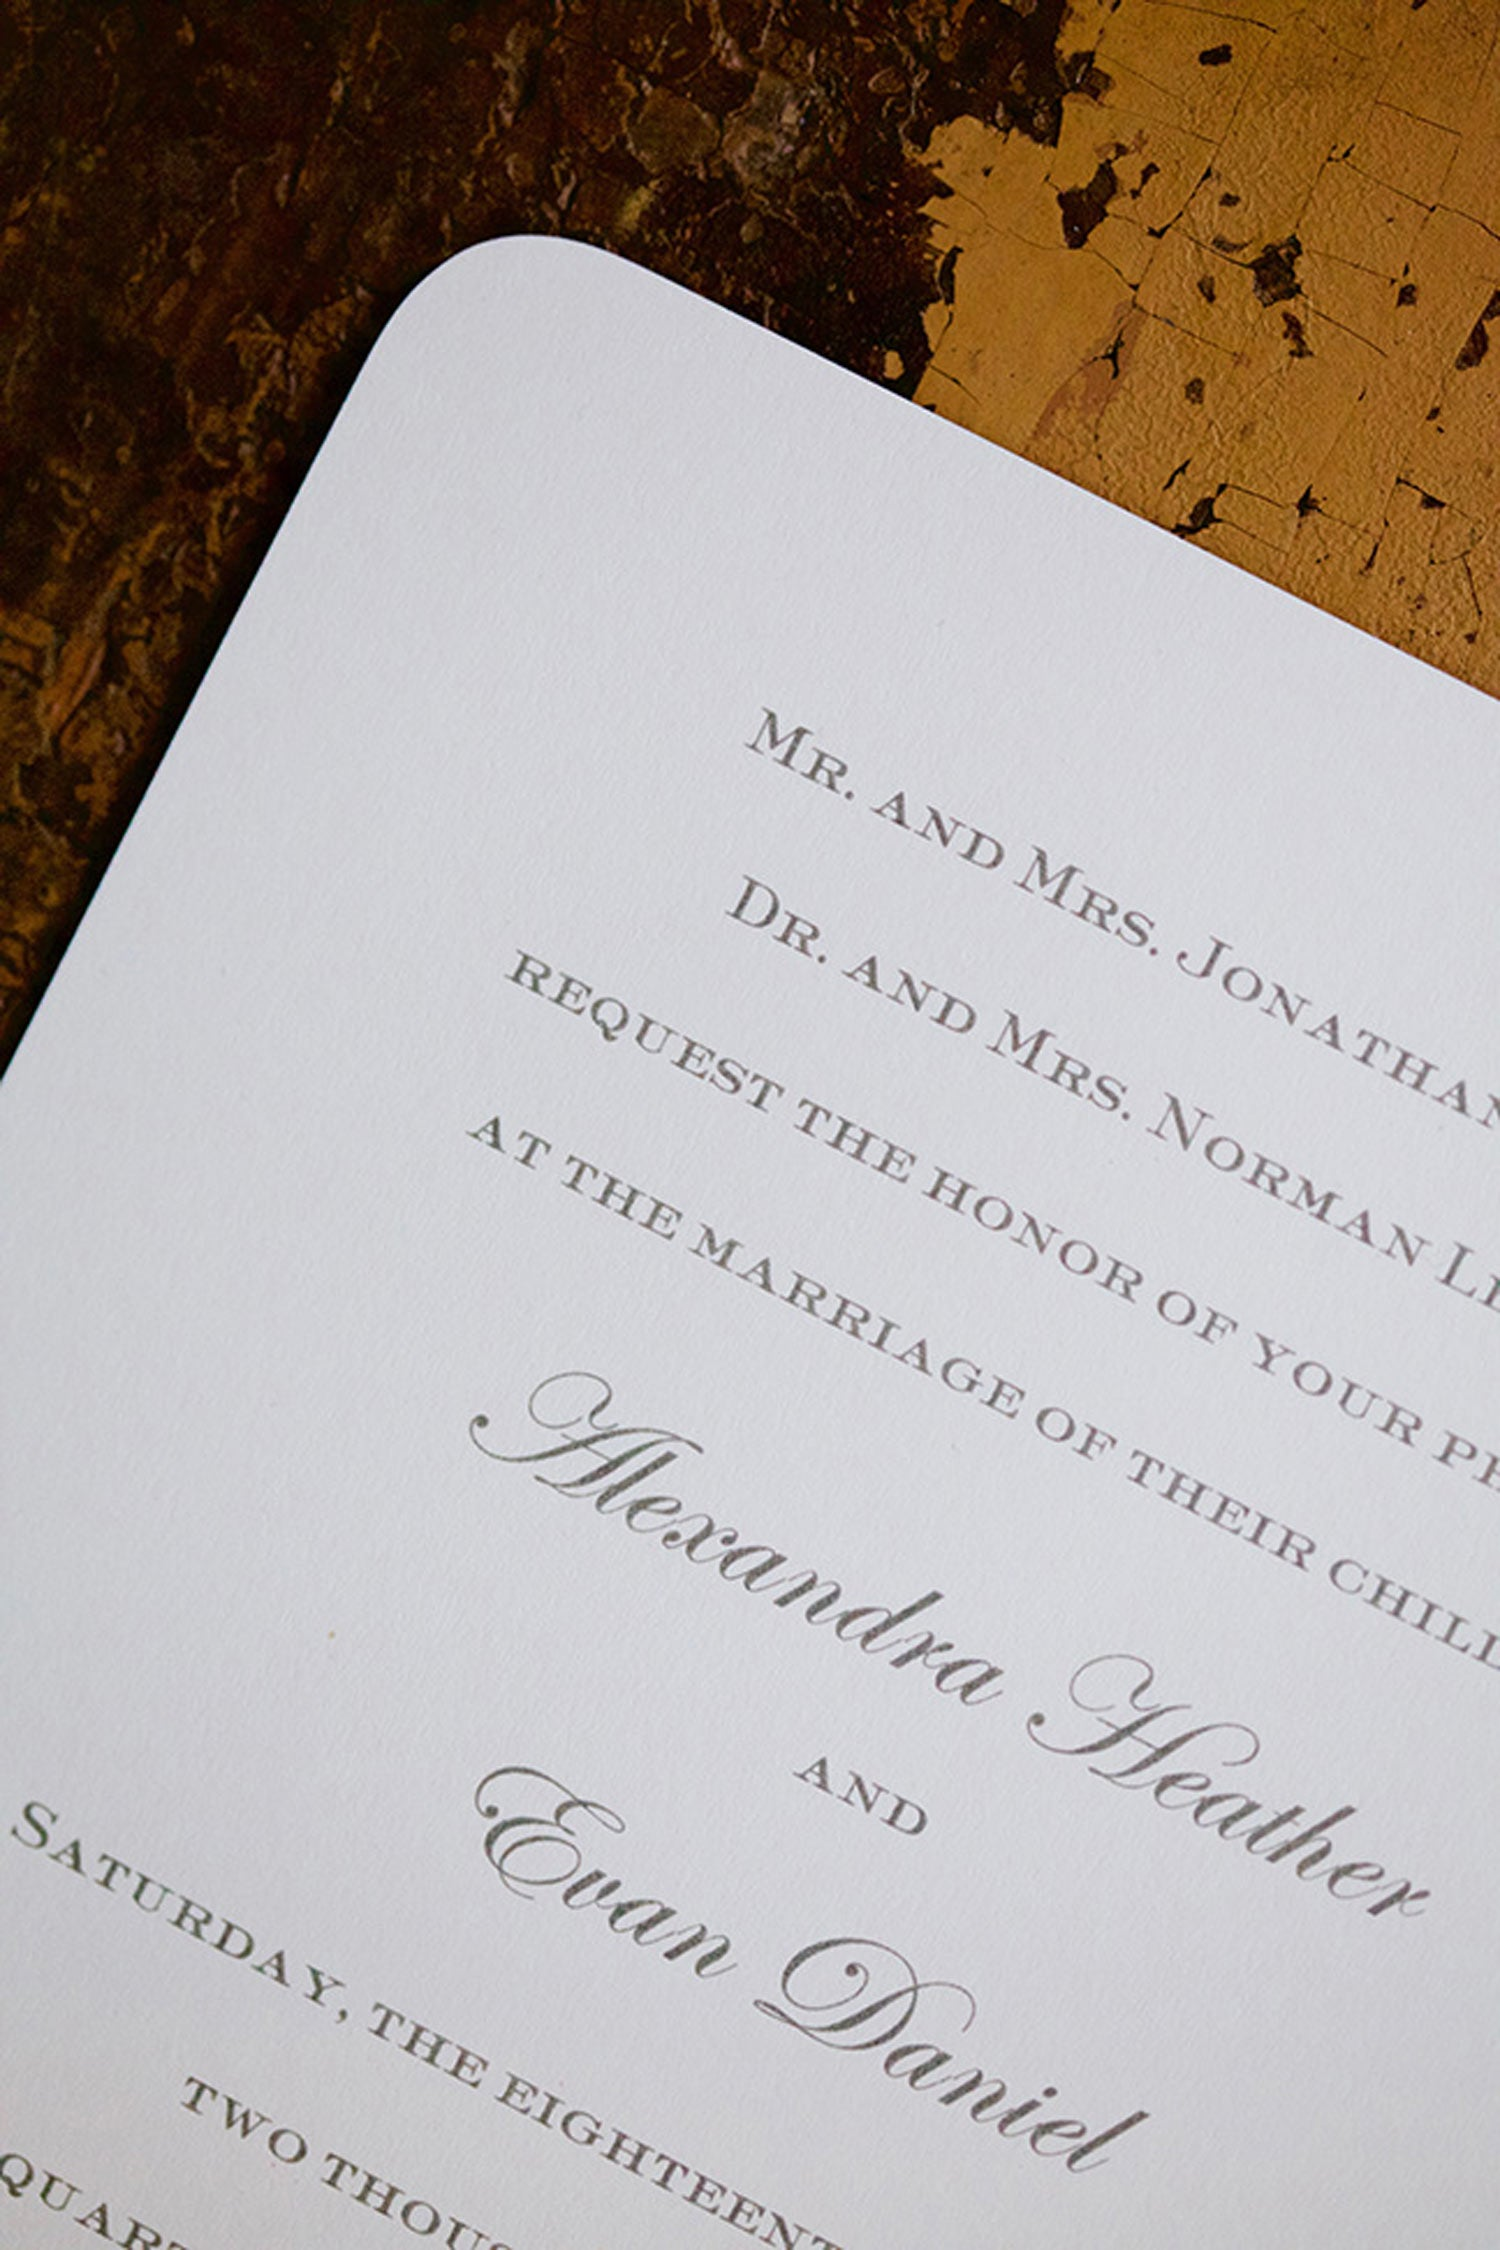 Alex & Evan is an engraved wedding suite set in NYC. Empire size natural white classic crest double thick paper in pewter ink with rounded corners and navy edge painting. Call us toll-free at 1-800-995-1549 or email us at hello@pickettspress.com